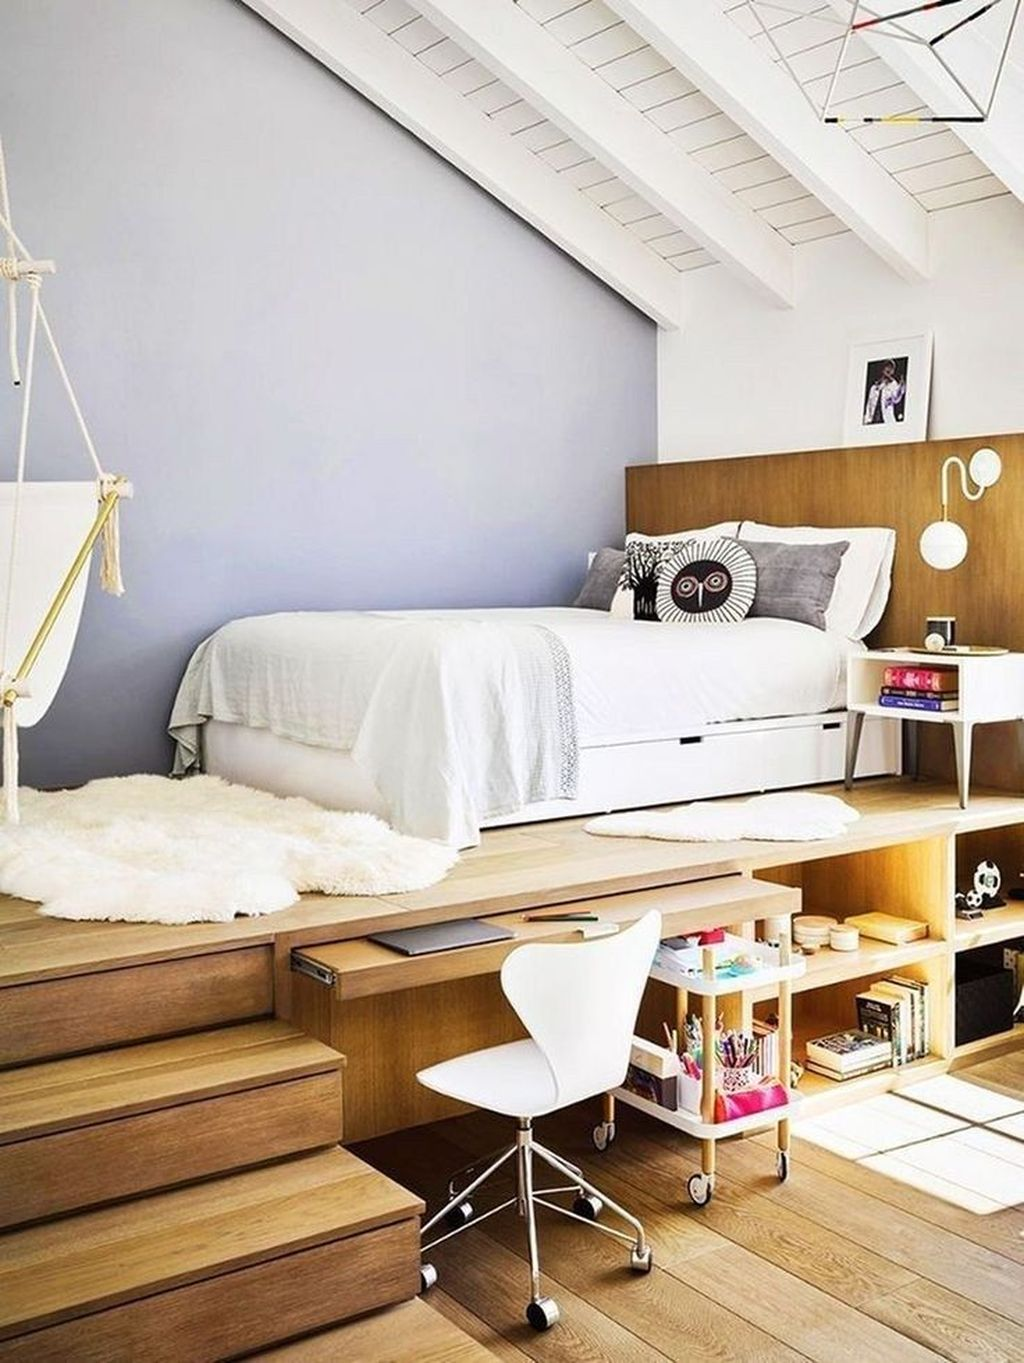 Amazing Attic Bedroom Design Ideas That You Will Like 23